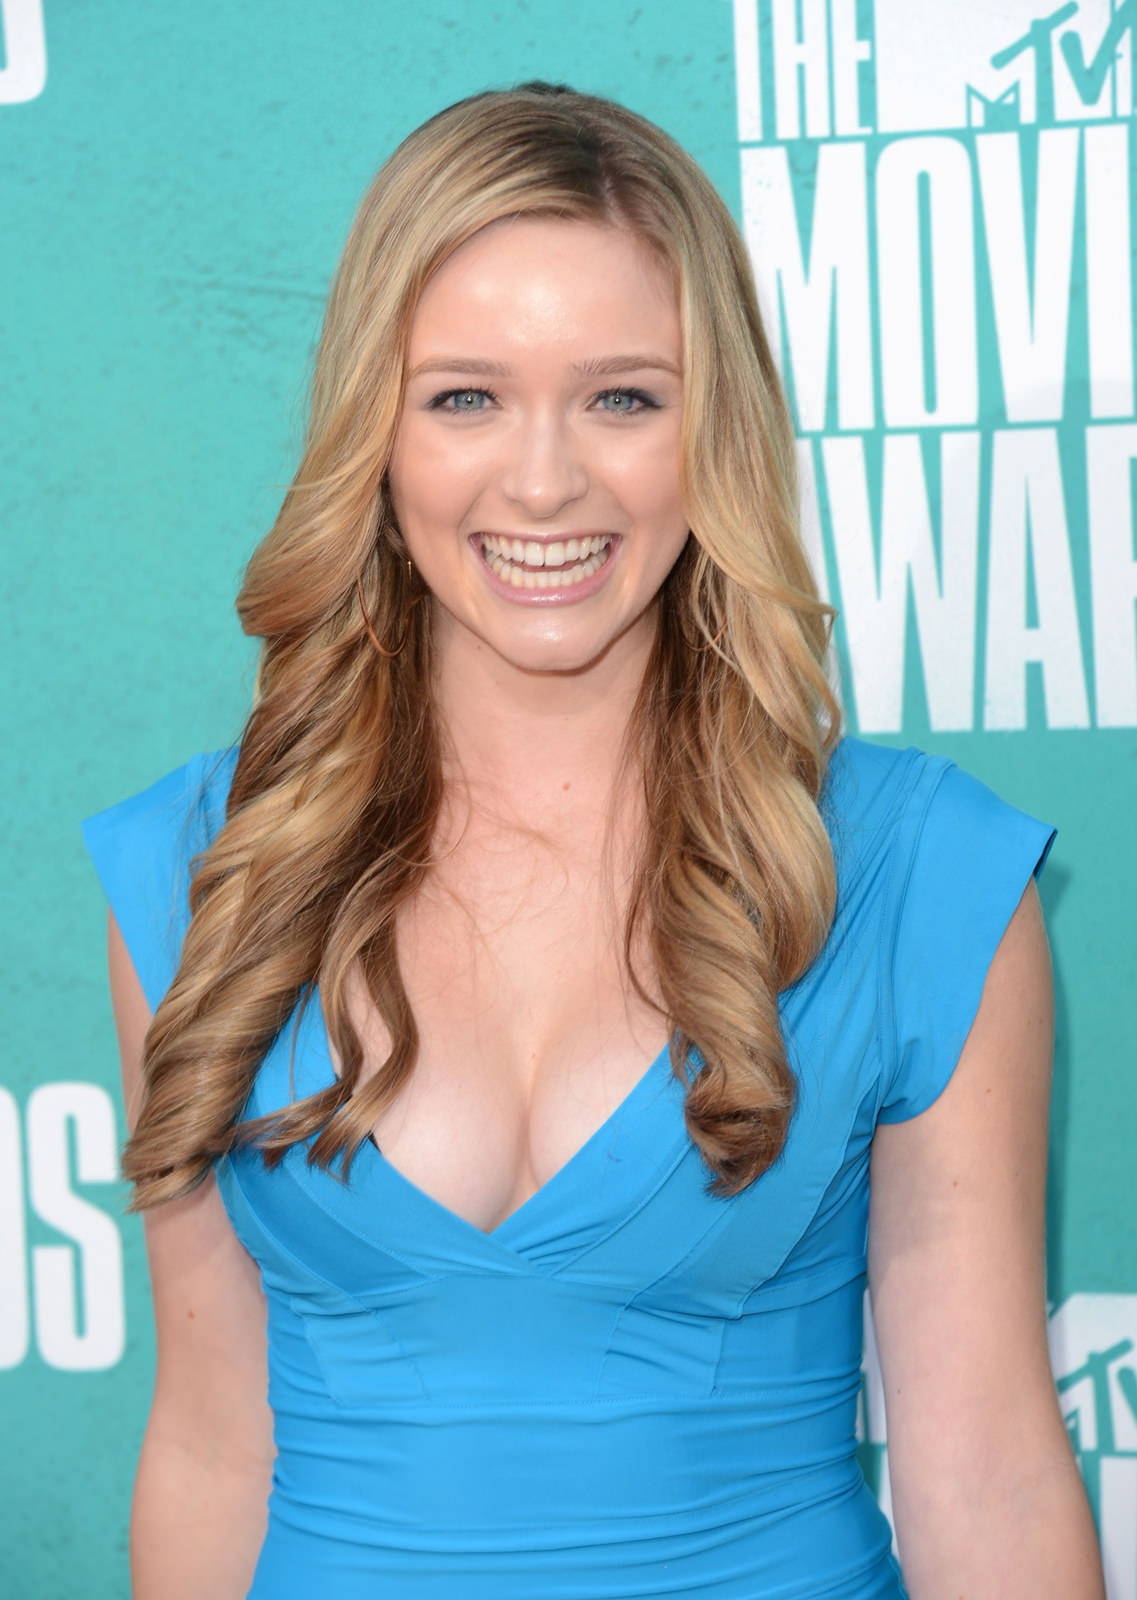 Greer Grammer Photo Gallery